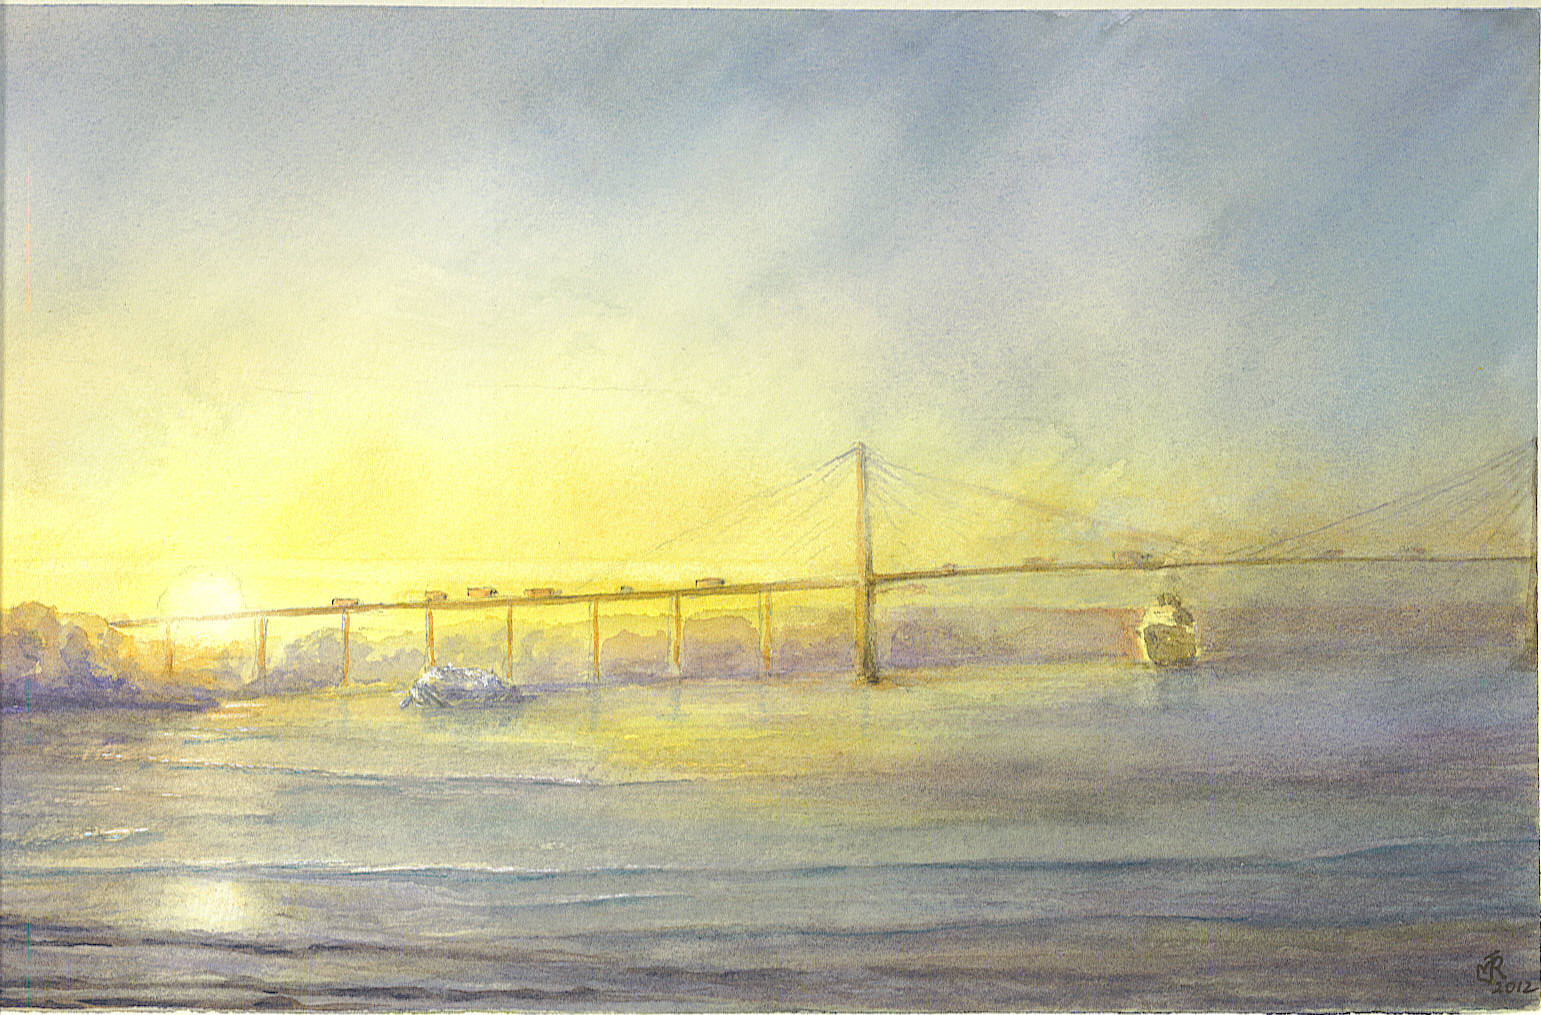 """QEII BRIDGE, DARTFORD"" SOLD"